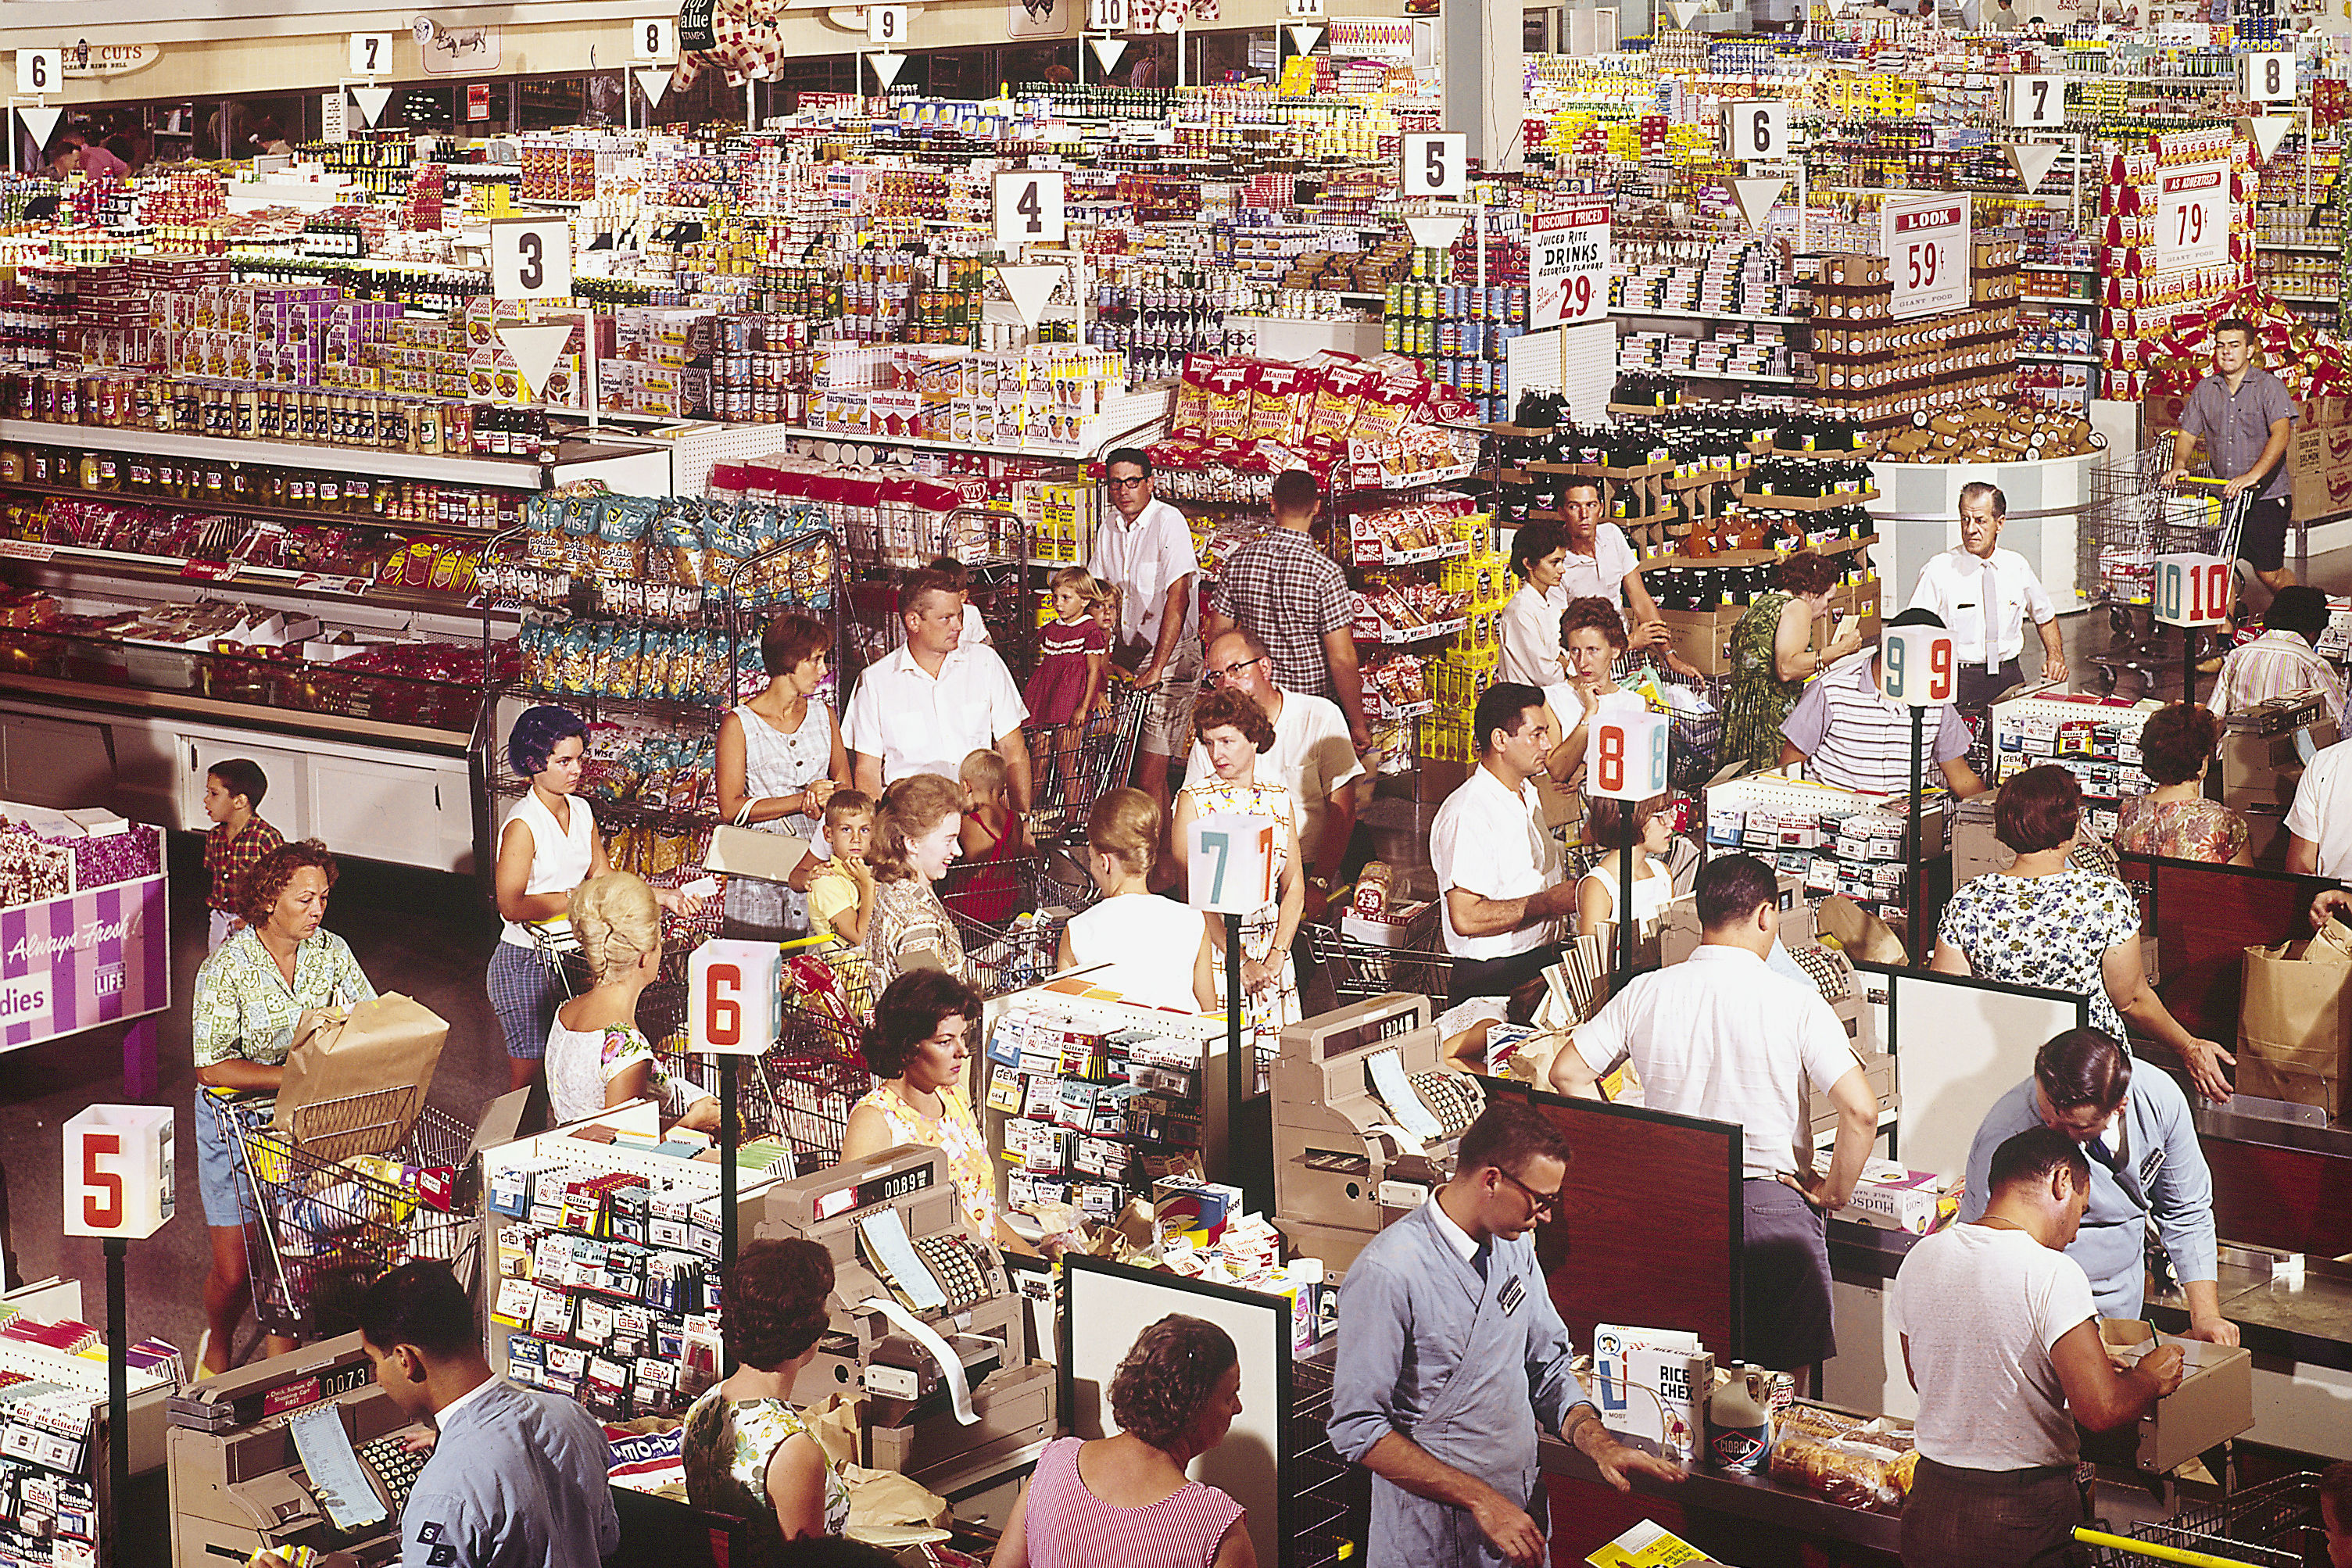 Tips for Picking the Fastest Grocery Store Line